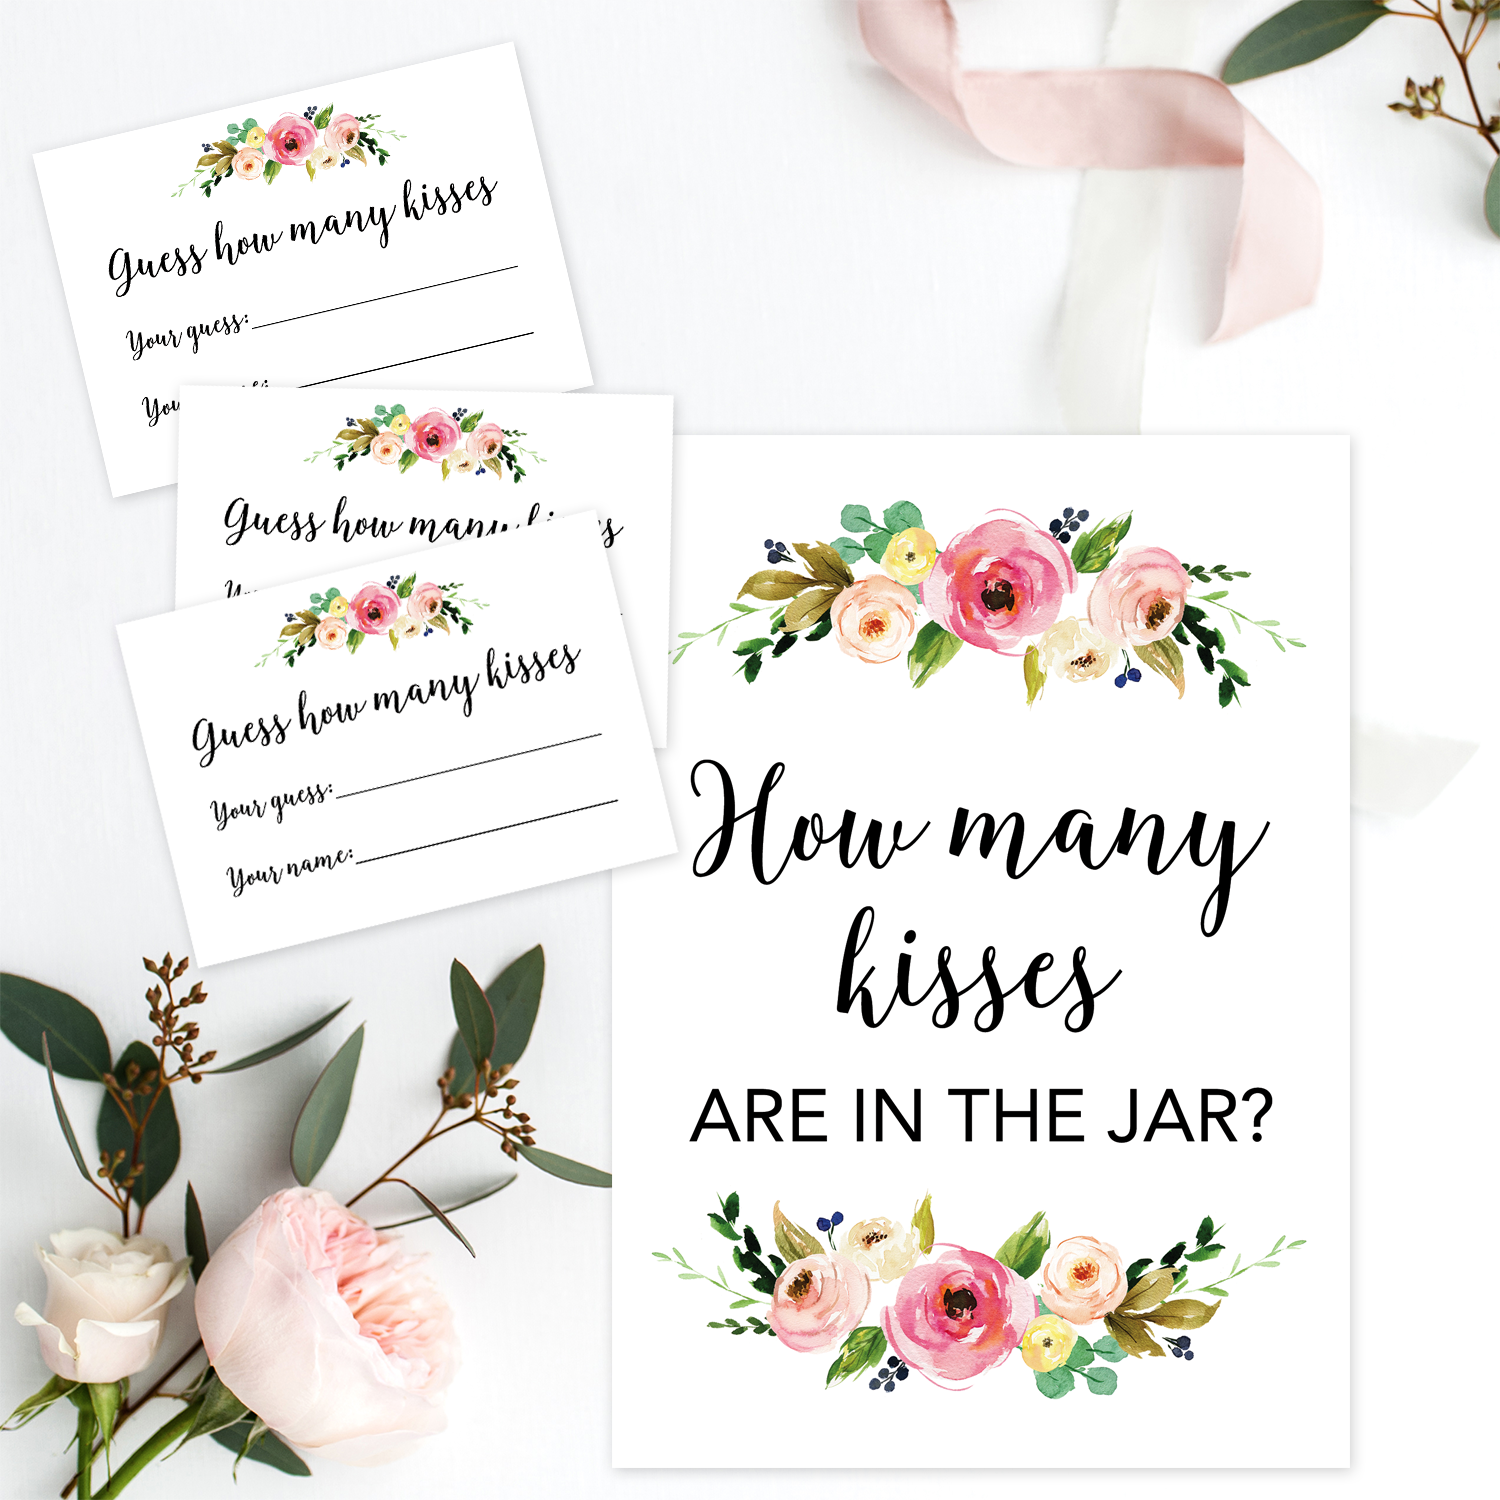 picture relating to Guess How Many in the Jar Printable titled Floral Printable How A great number of Kisses